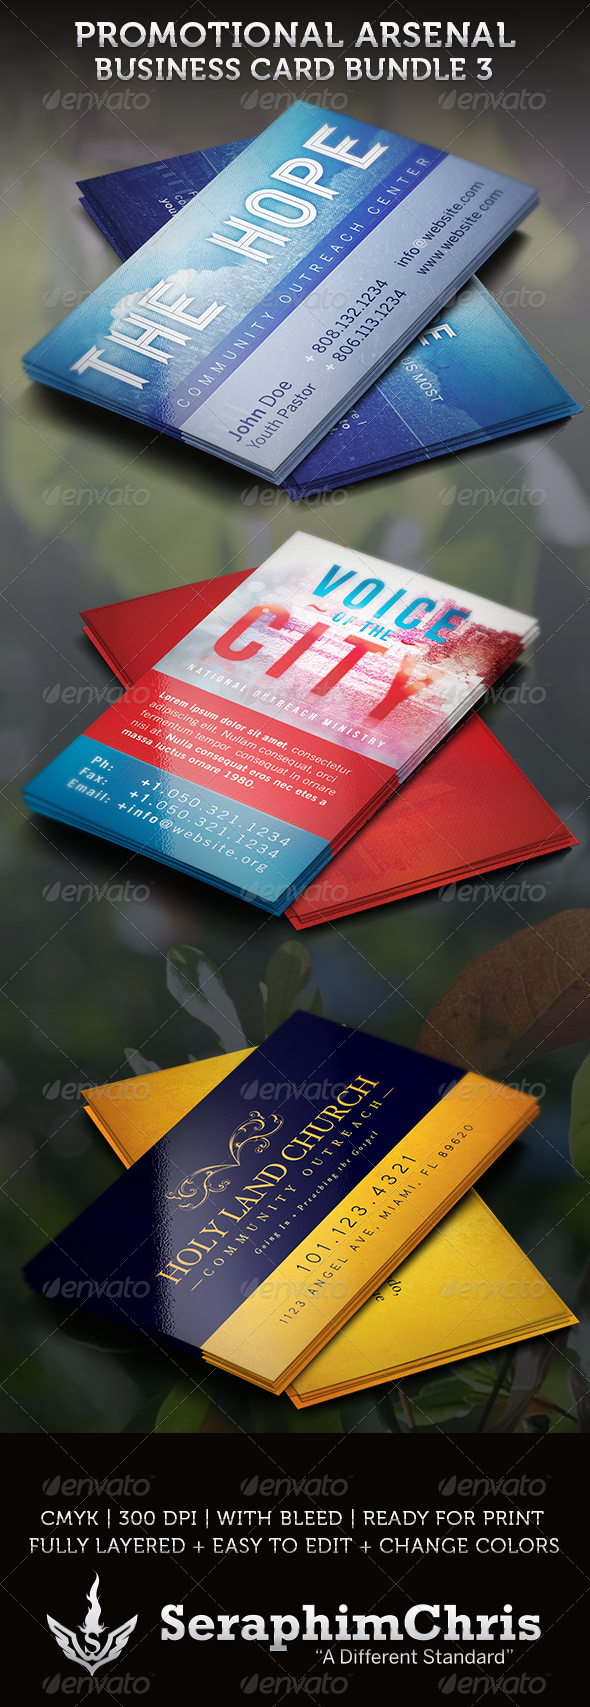 Promotional arsenal business card bundle 3 business cards this promotional arsenal business card bundle 3 is compiled to give you a great value with colourmoves